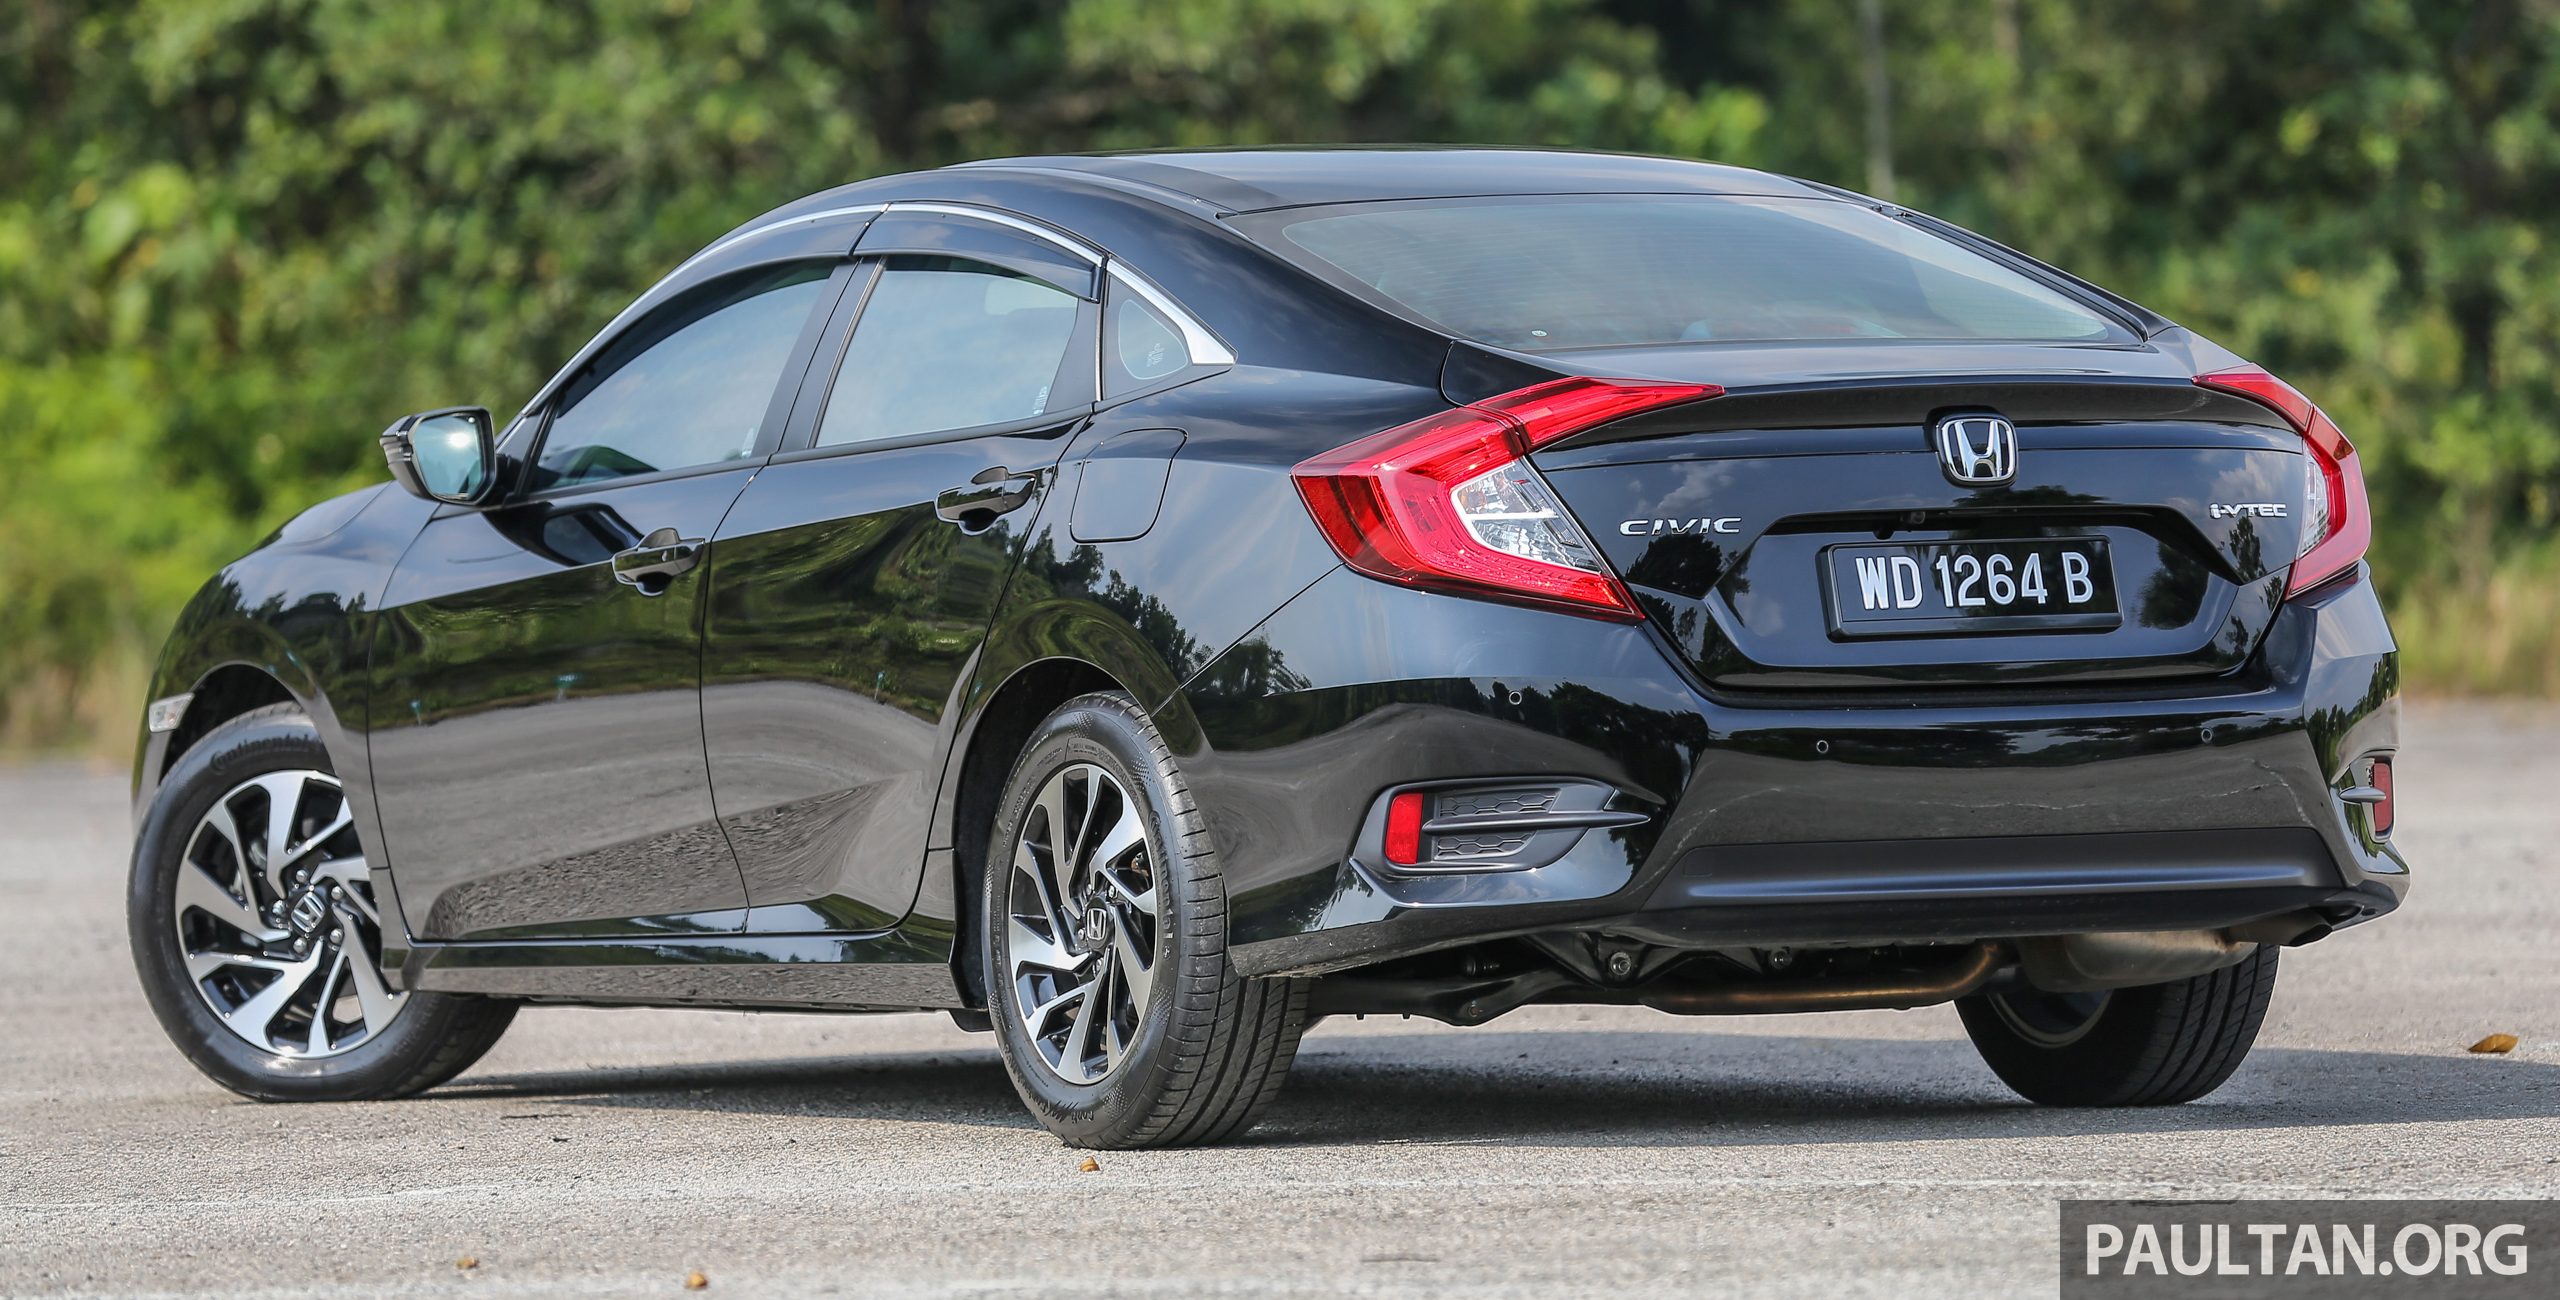 Gallery Honda Civic 1 8s It S Quietly Competent Image 602419